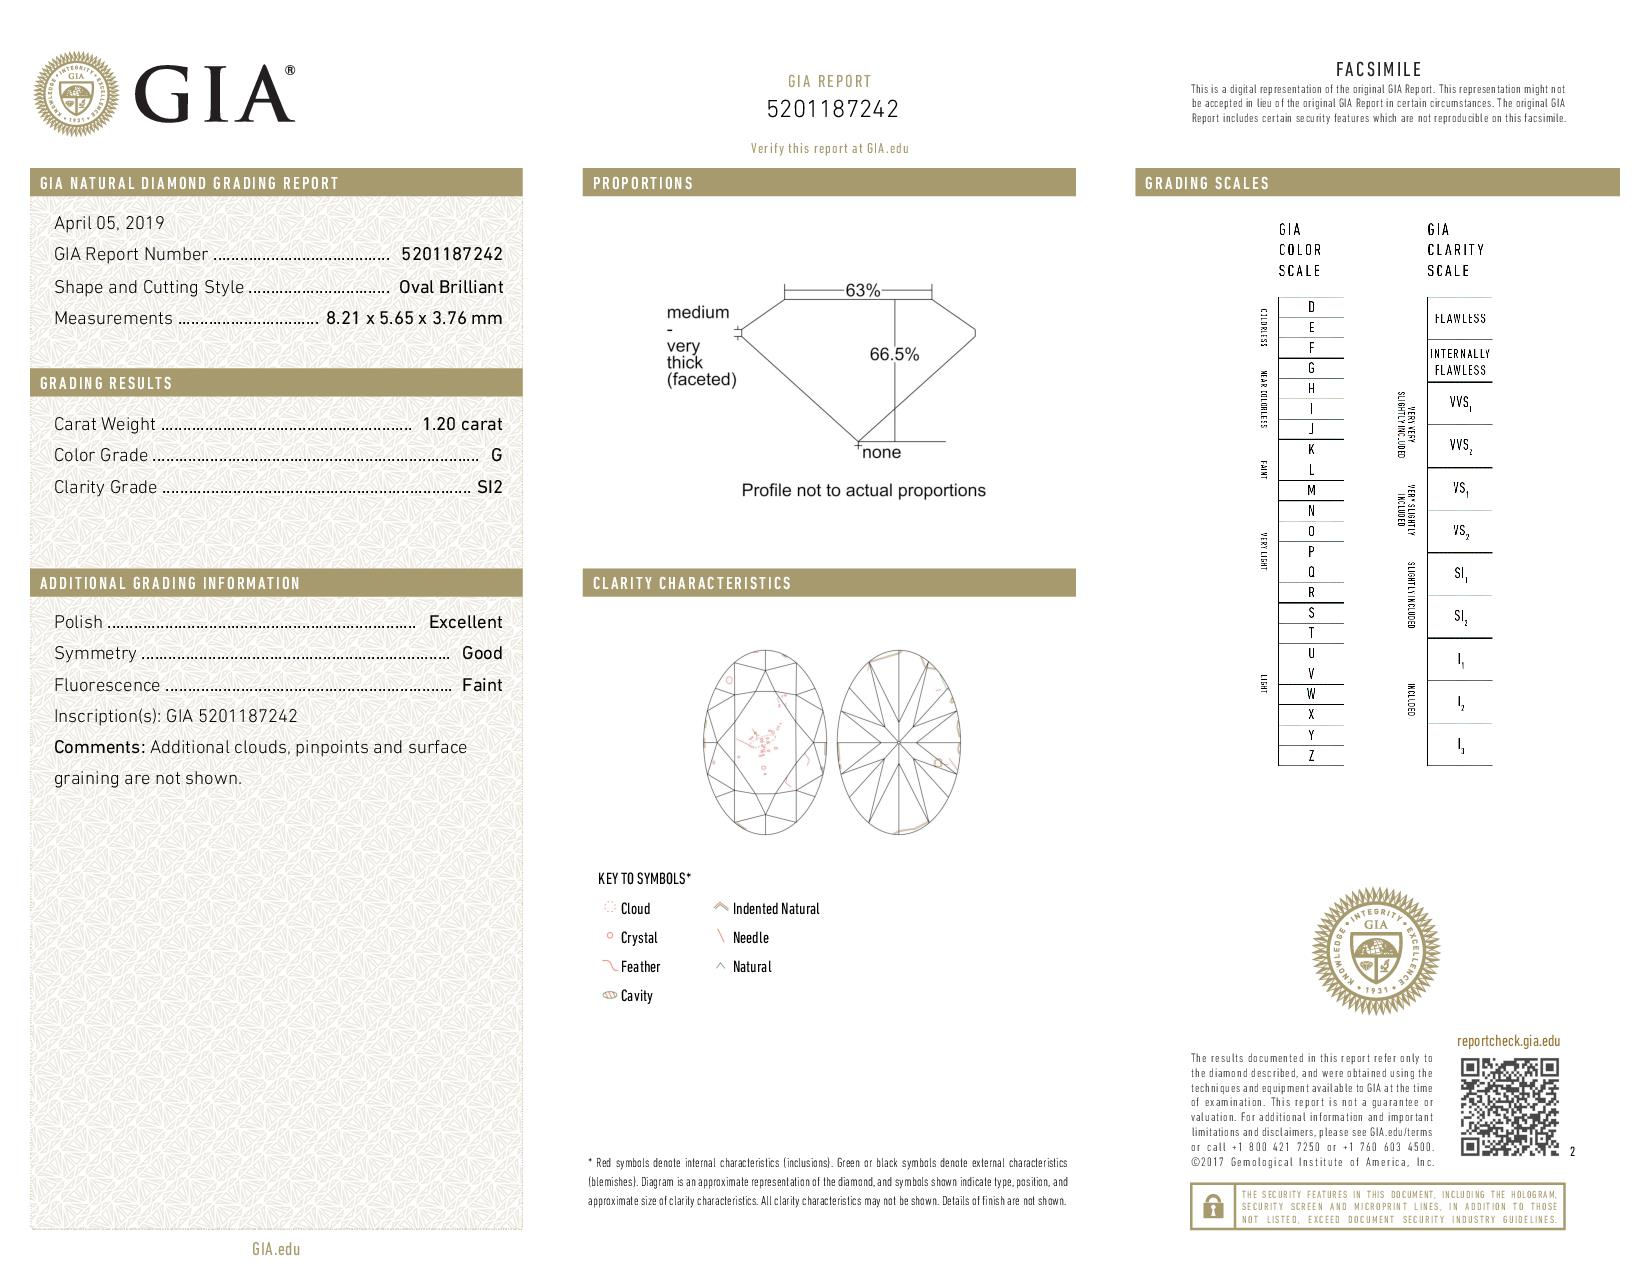 This is a 1.20 carat oval shape, G color, SI2 clarity natural diamond accompanied by a GIA grading report.